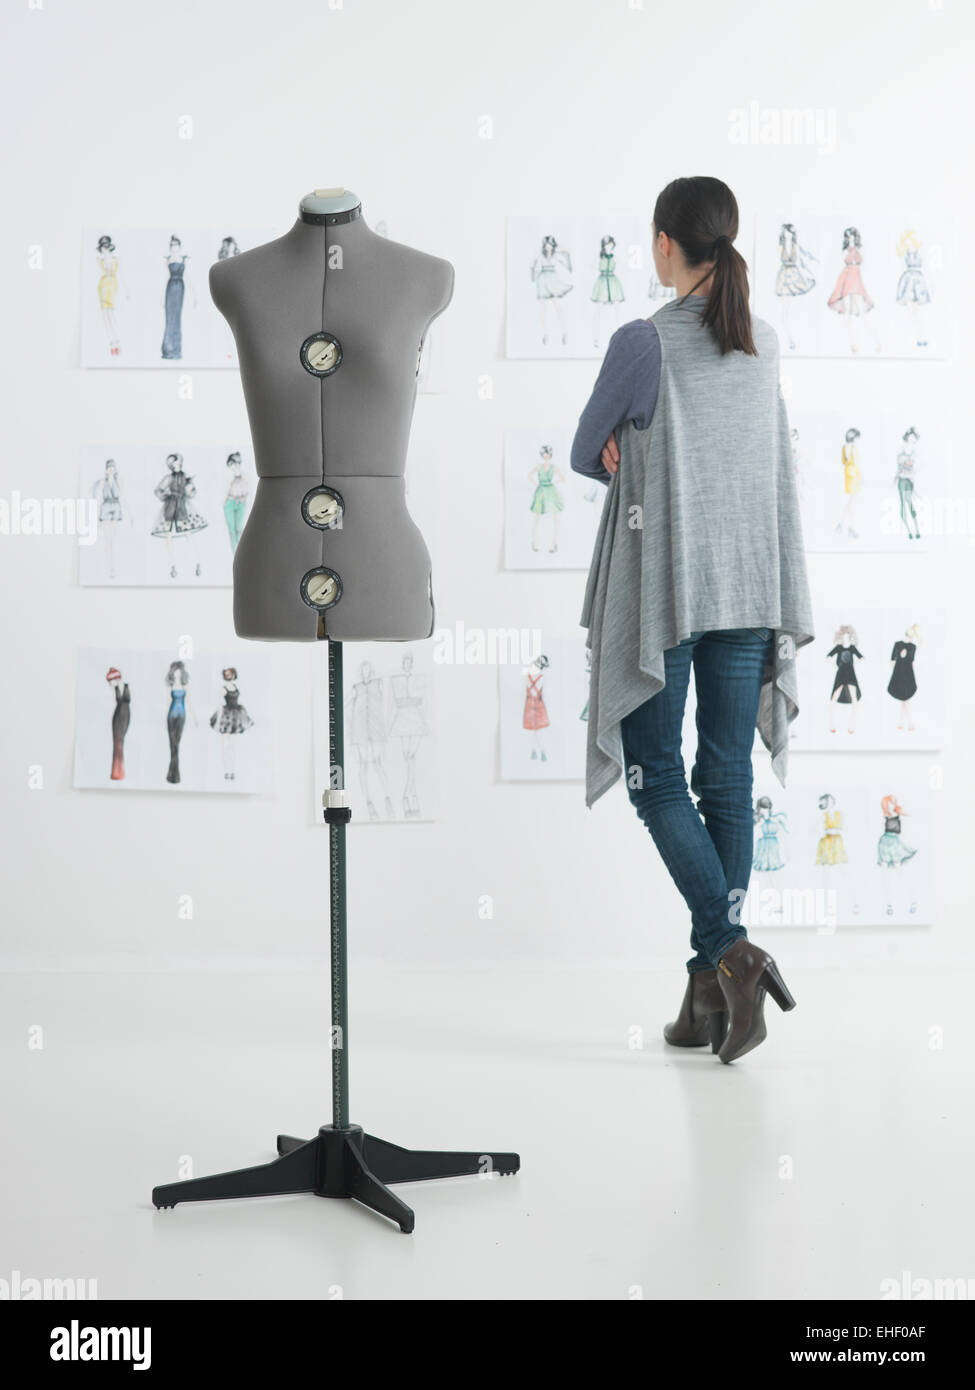 female fashion designer standing in her studio looking at sketches - Stock Image